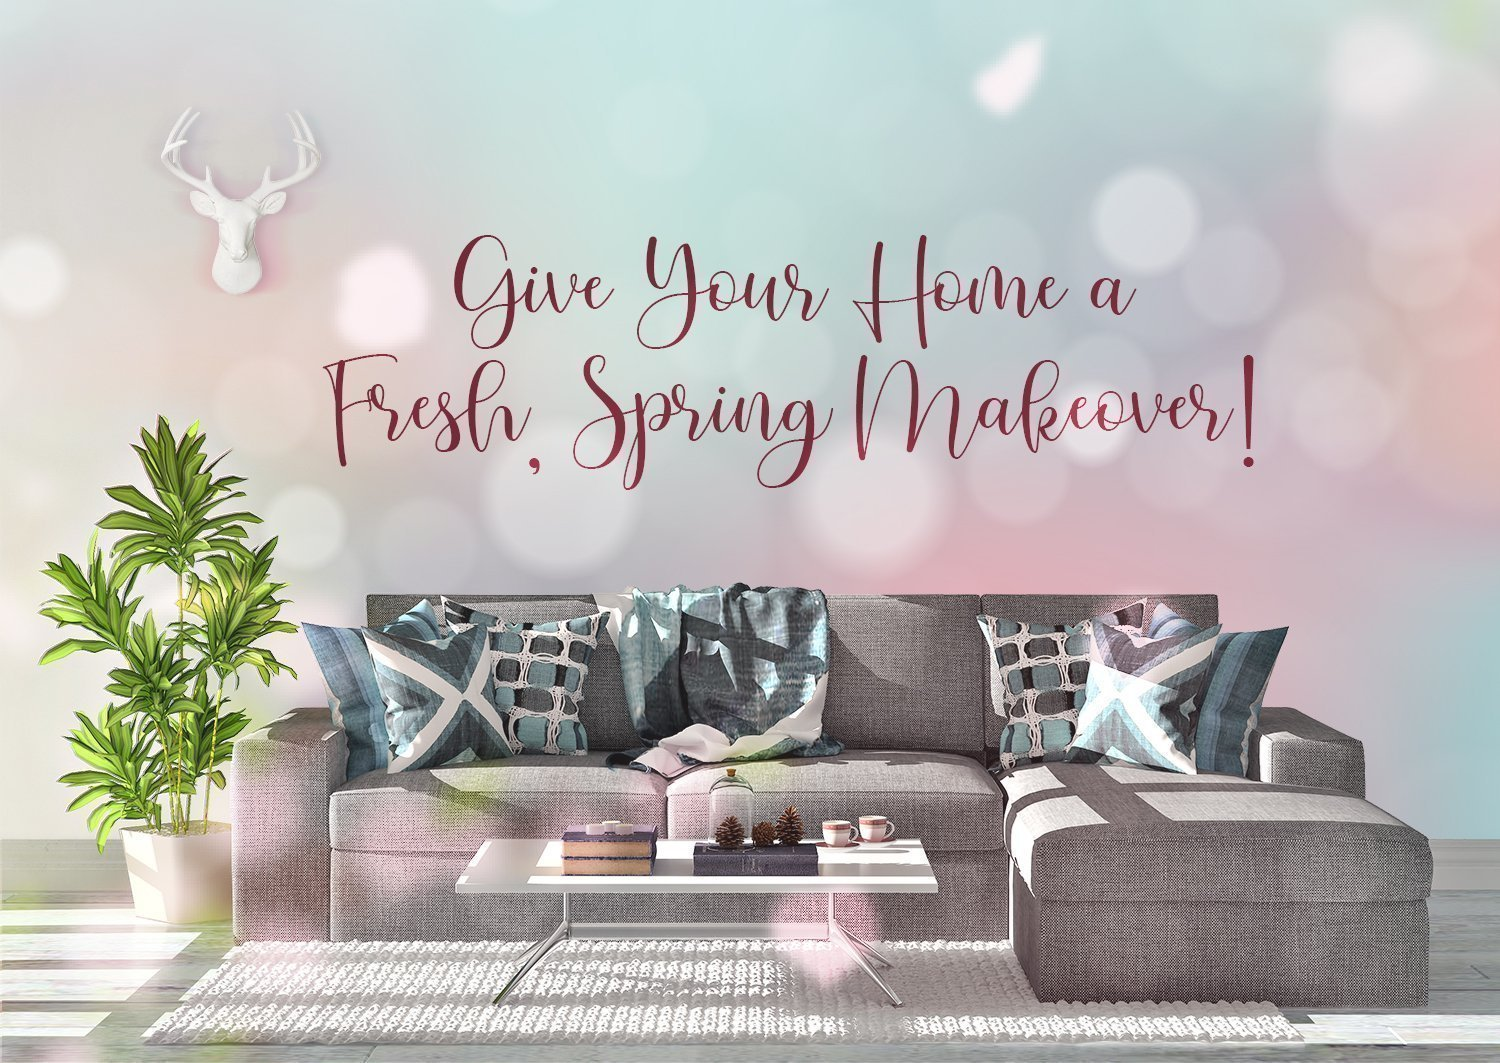 It's amost Springtime! Give your home a Fresh, Spring Makeover!!